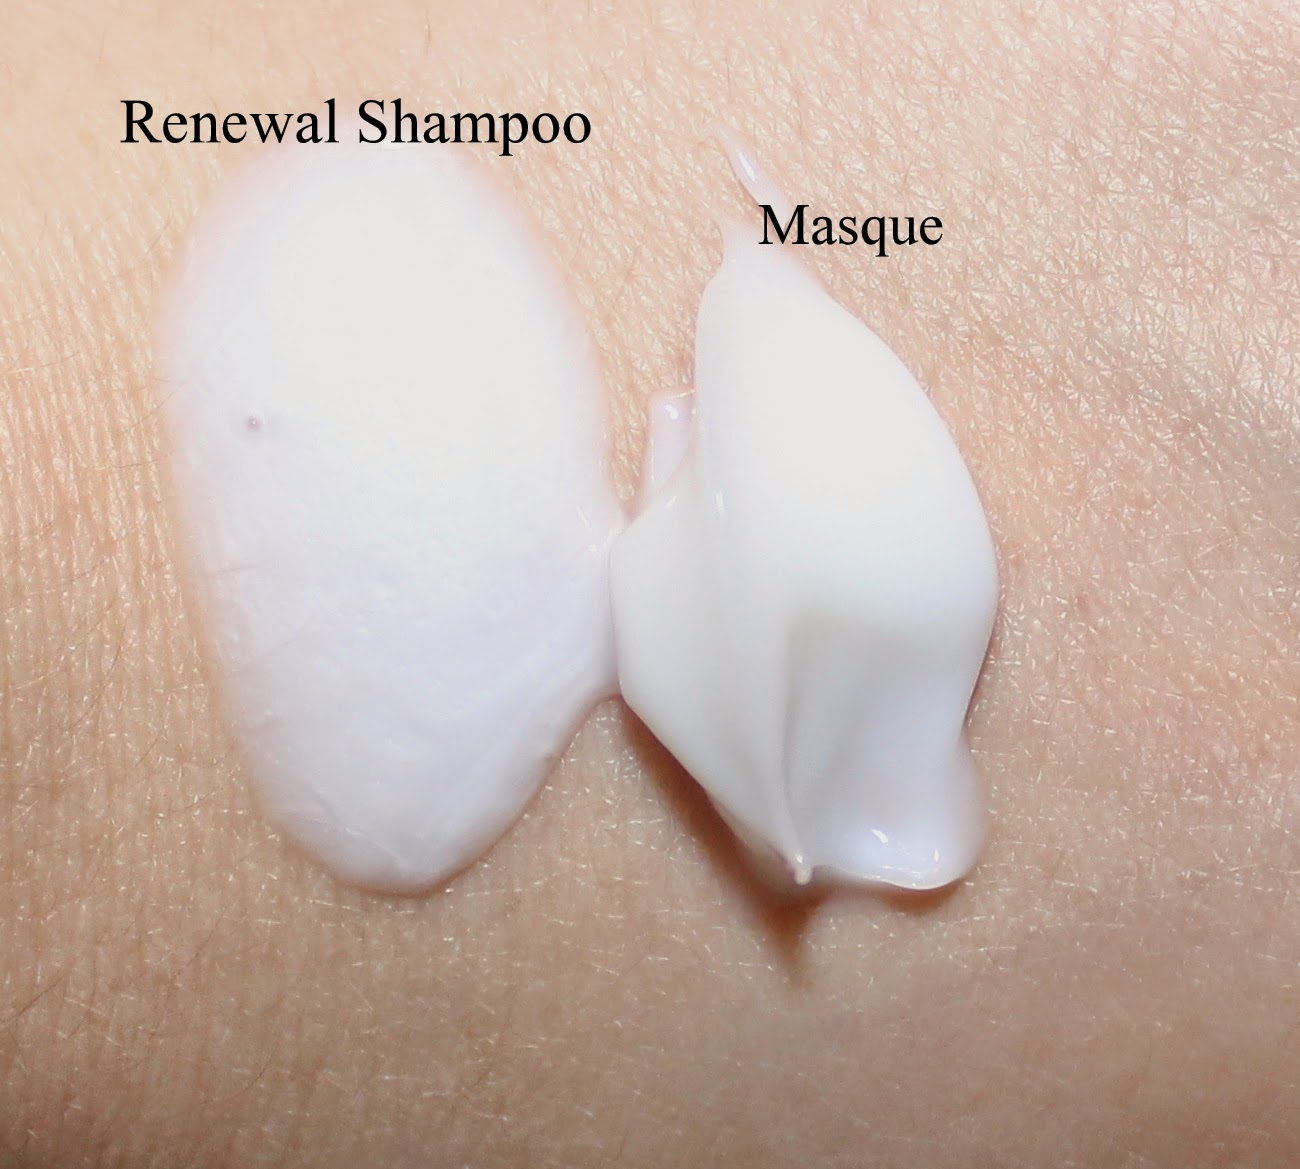 Senscience Renewal Shampoo & Masque